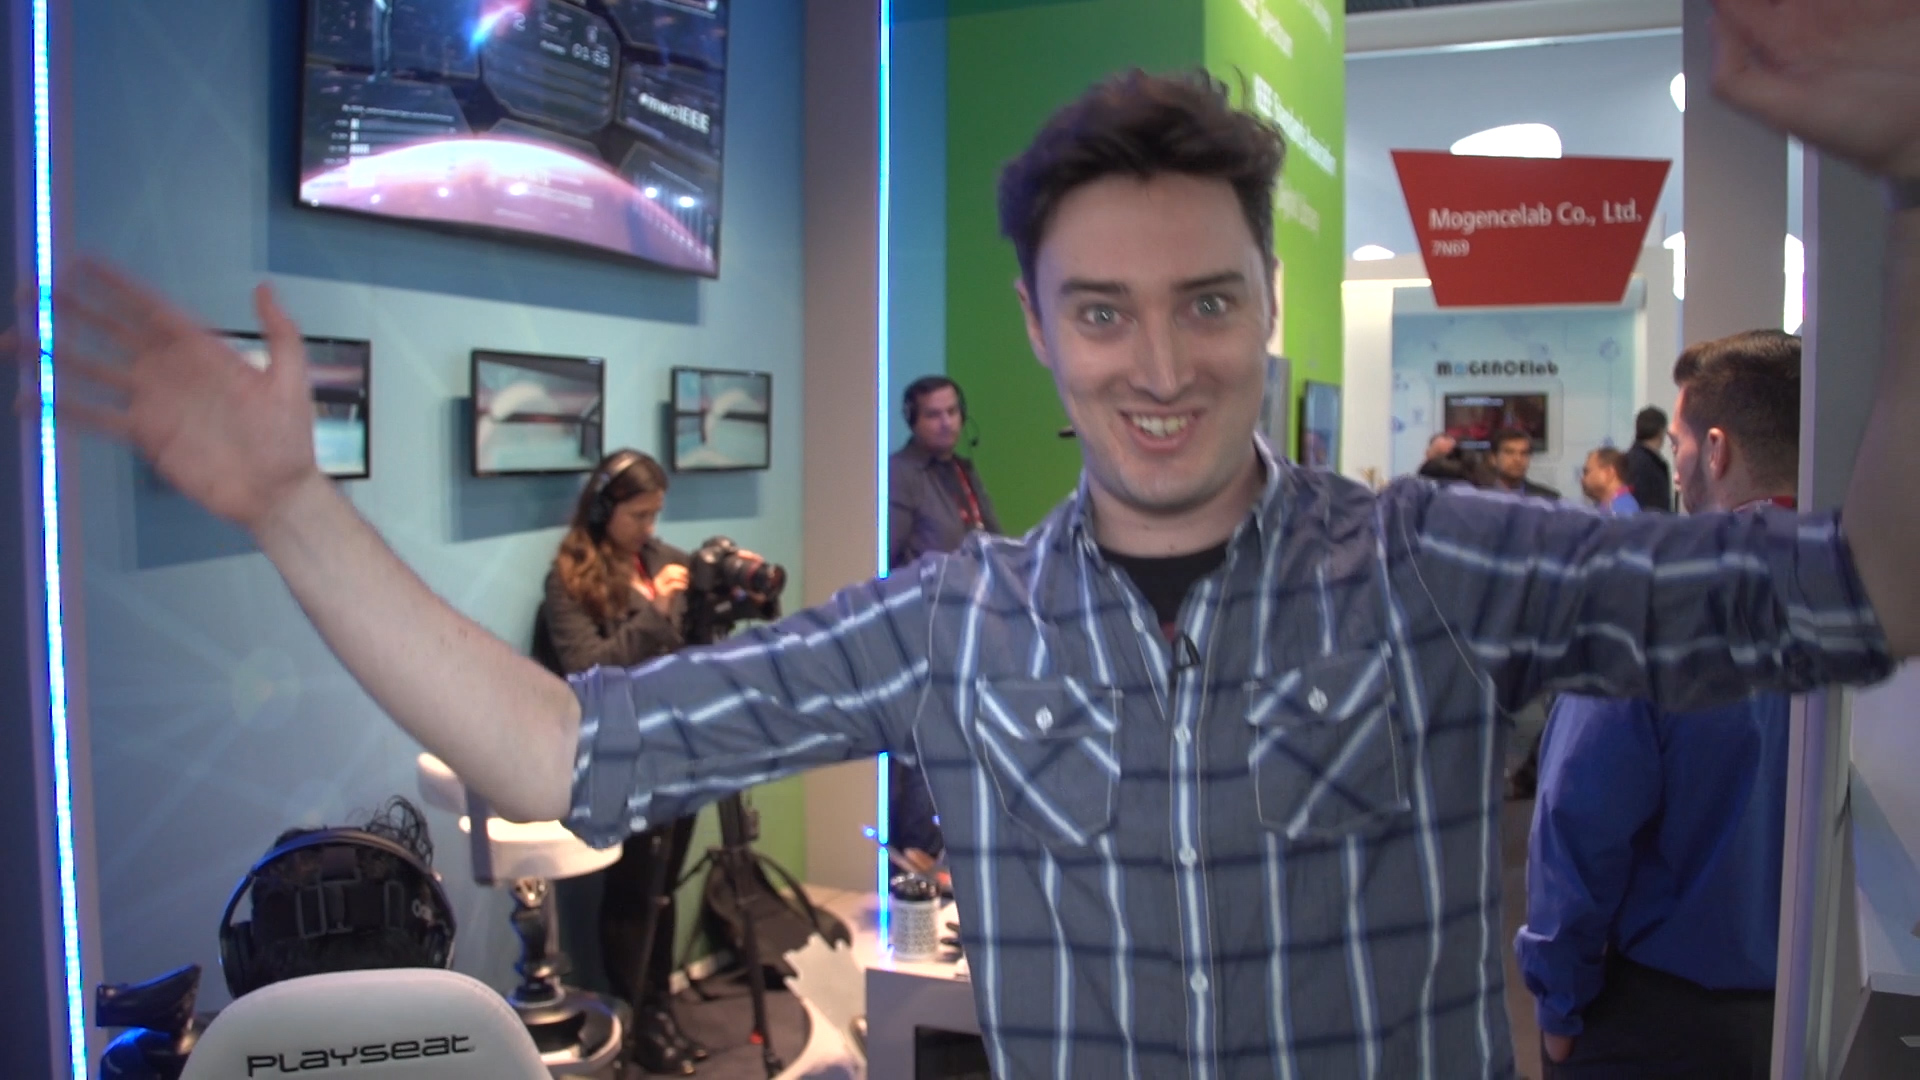 Video: CNET makes its own fun at MWC